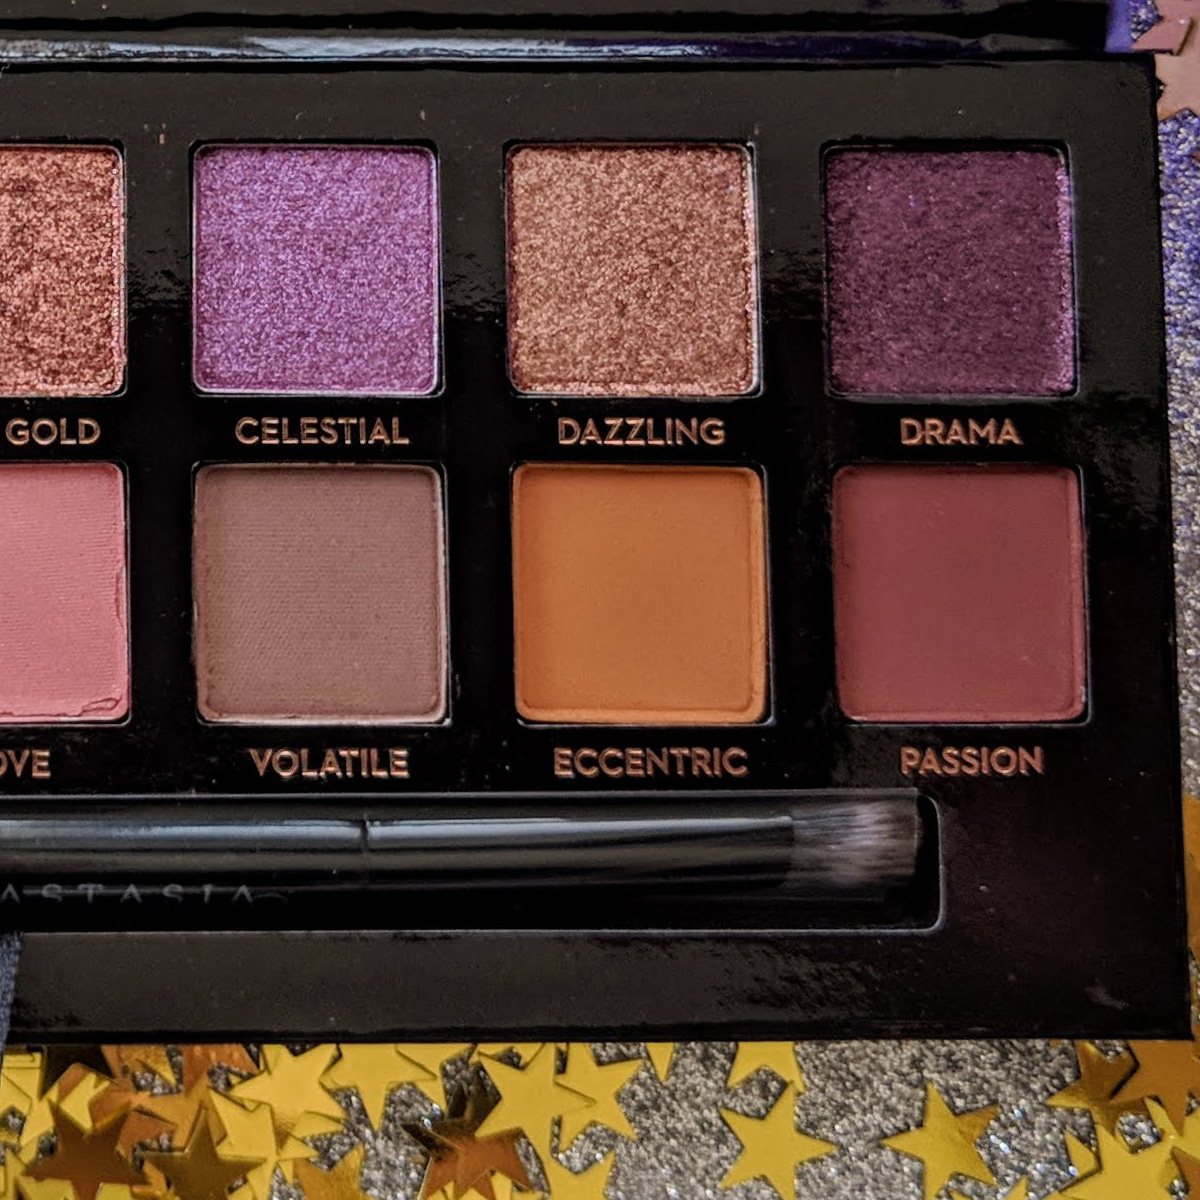 abh-norvina-eyeshadow-palette-right